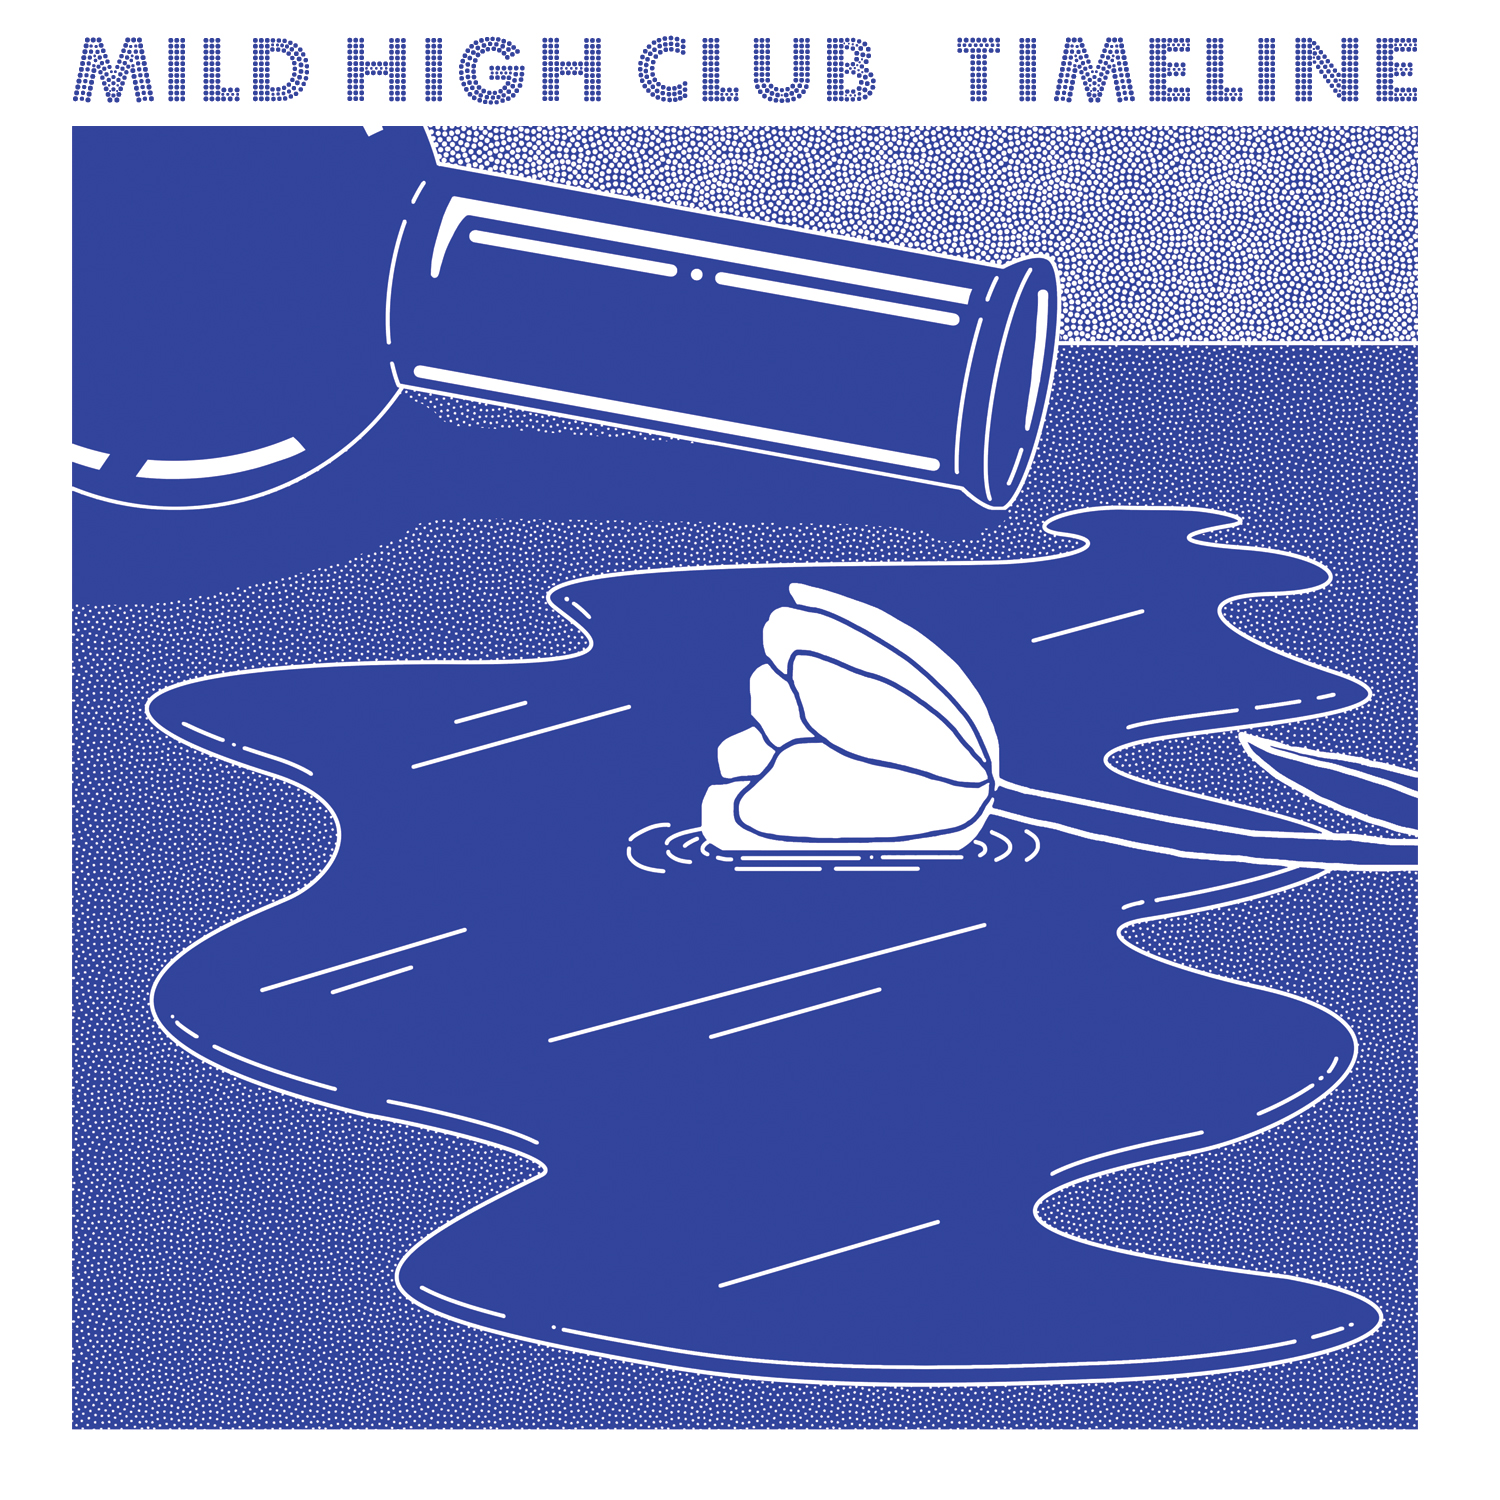 Review of the new album from Mild High Club 'Timeline', The bands full-length comes out on September 18th via Stones Throw/Circle Star Records.